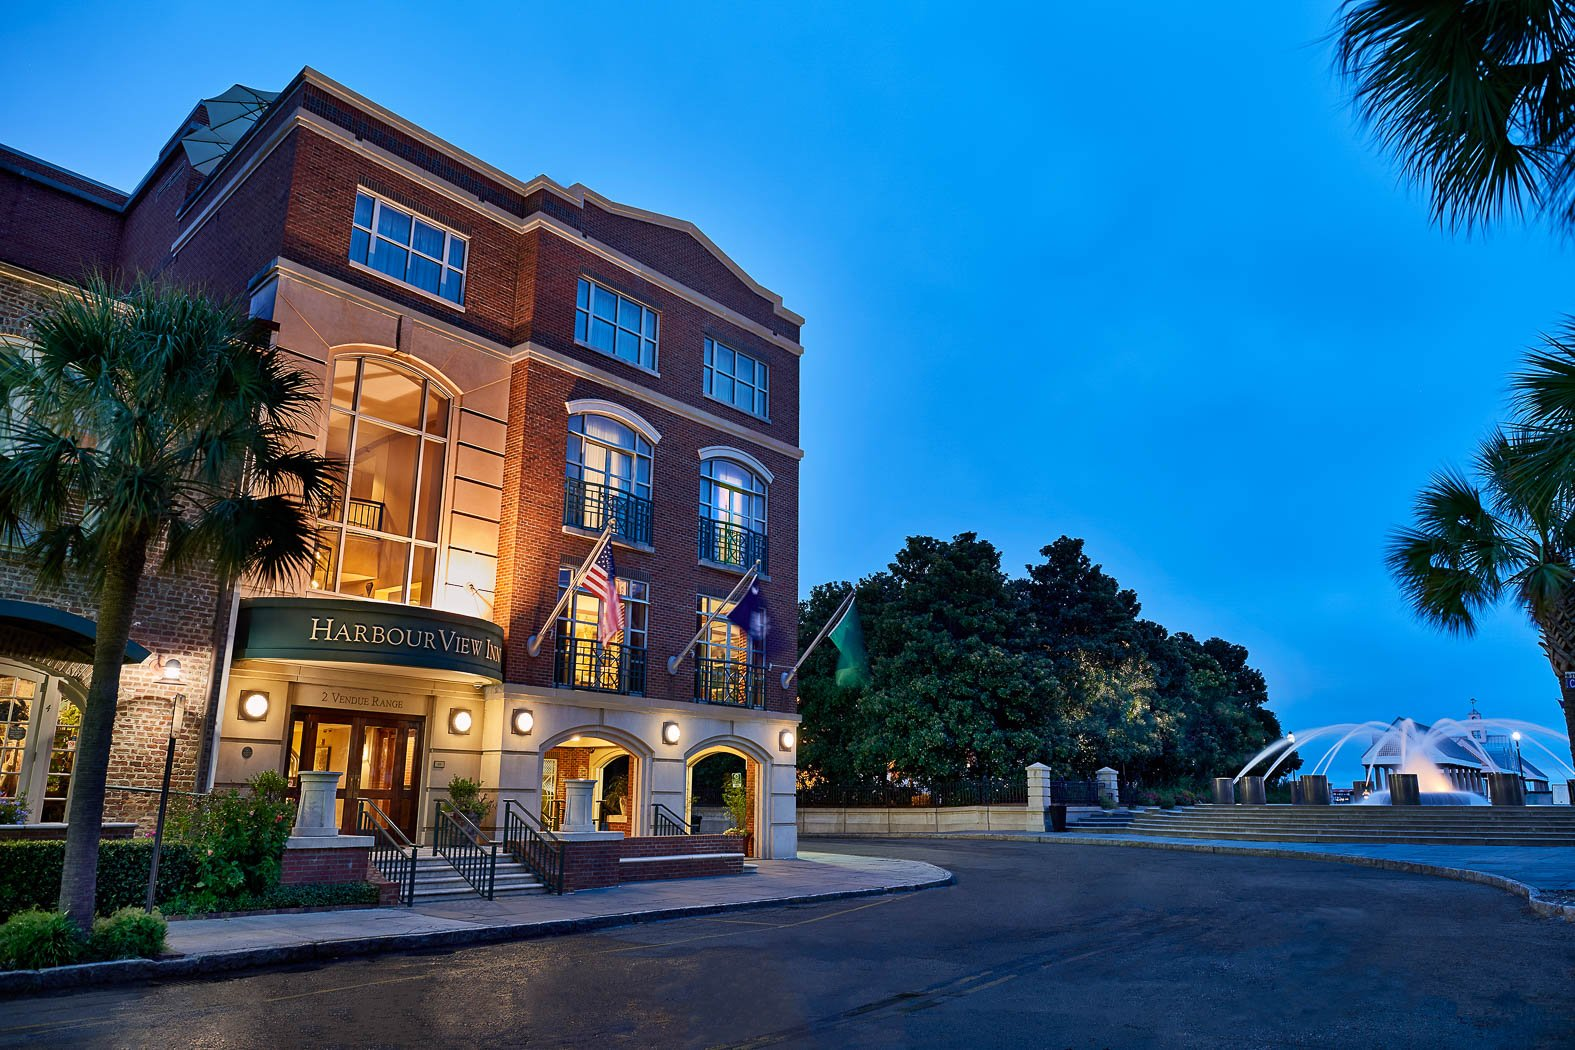 harbour view inn official website charleston hotels